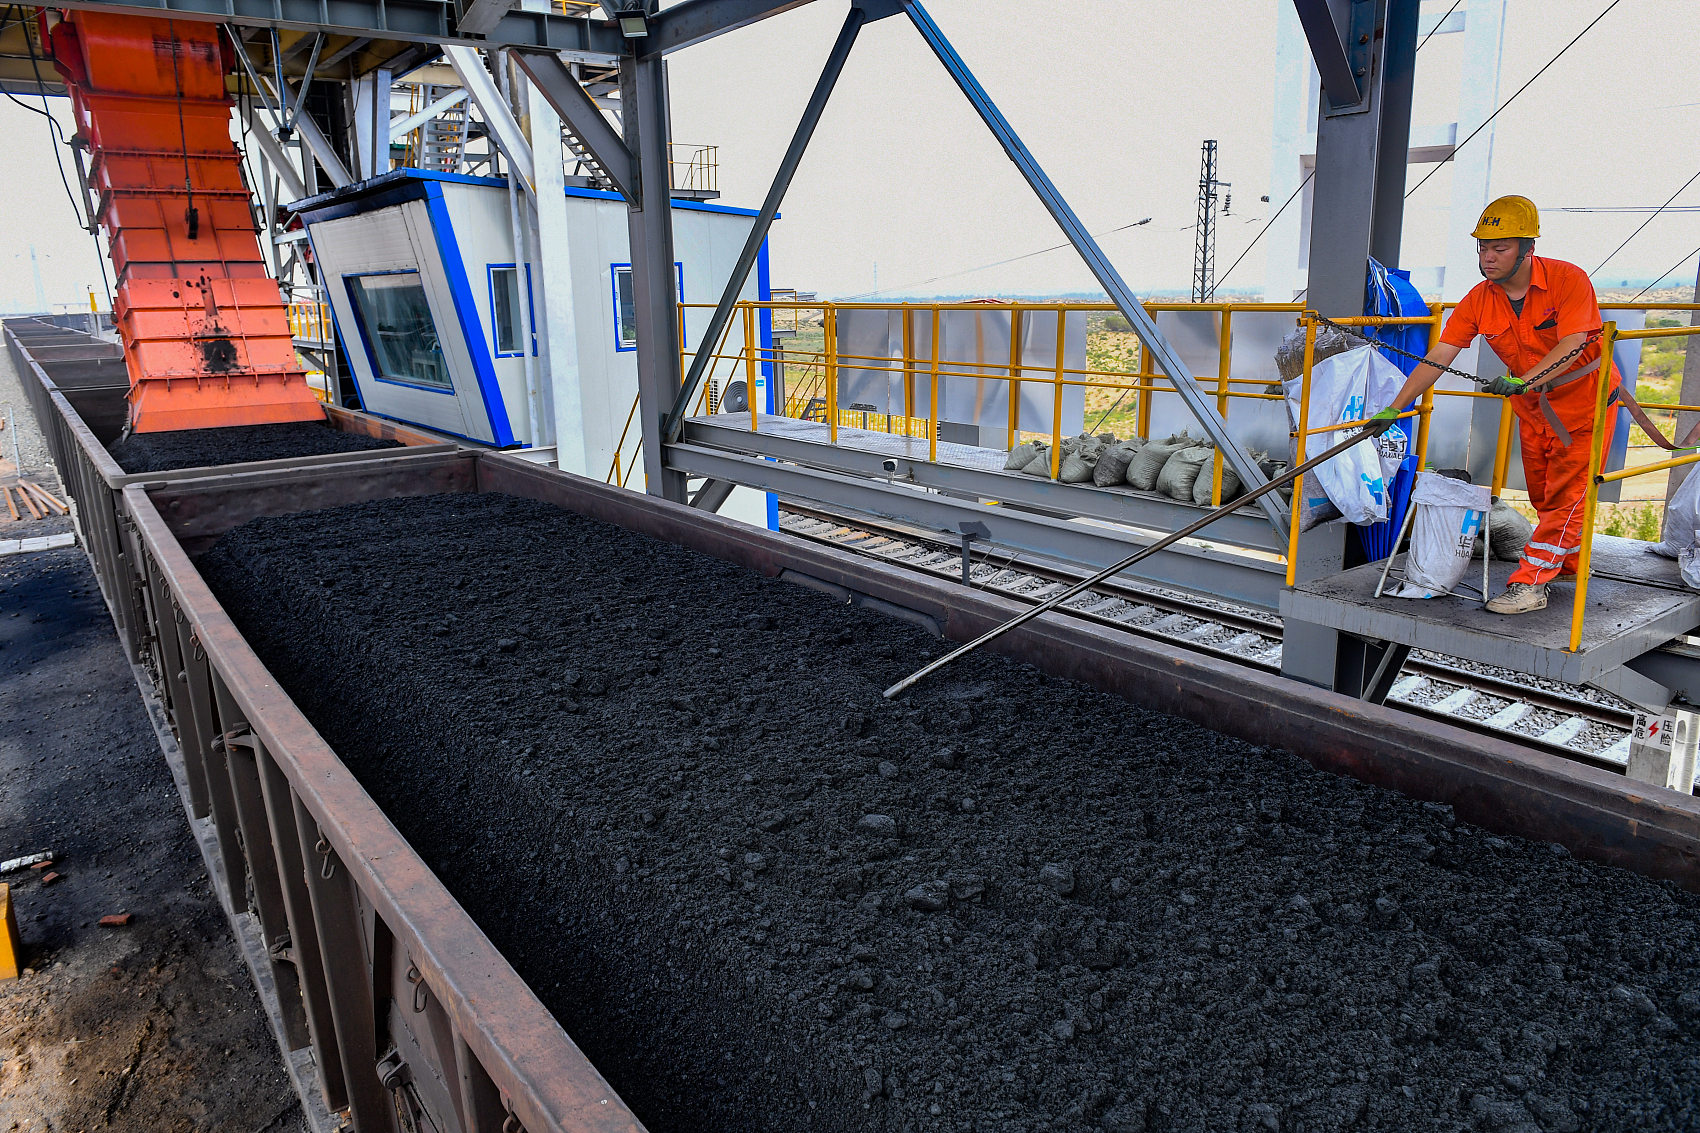 China's top economic planner approves coal mine project